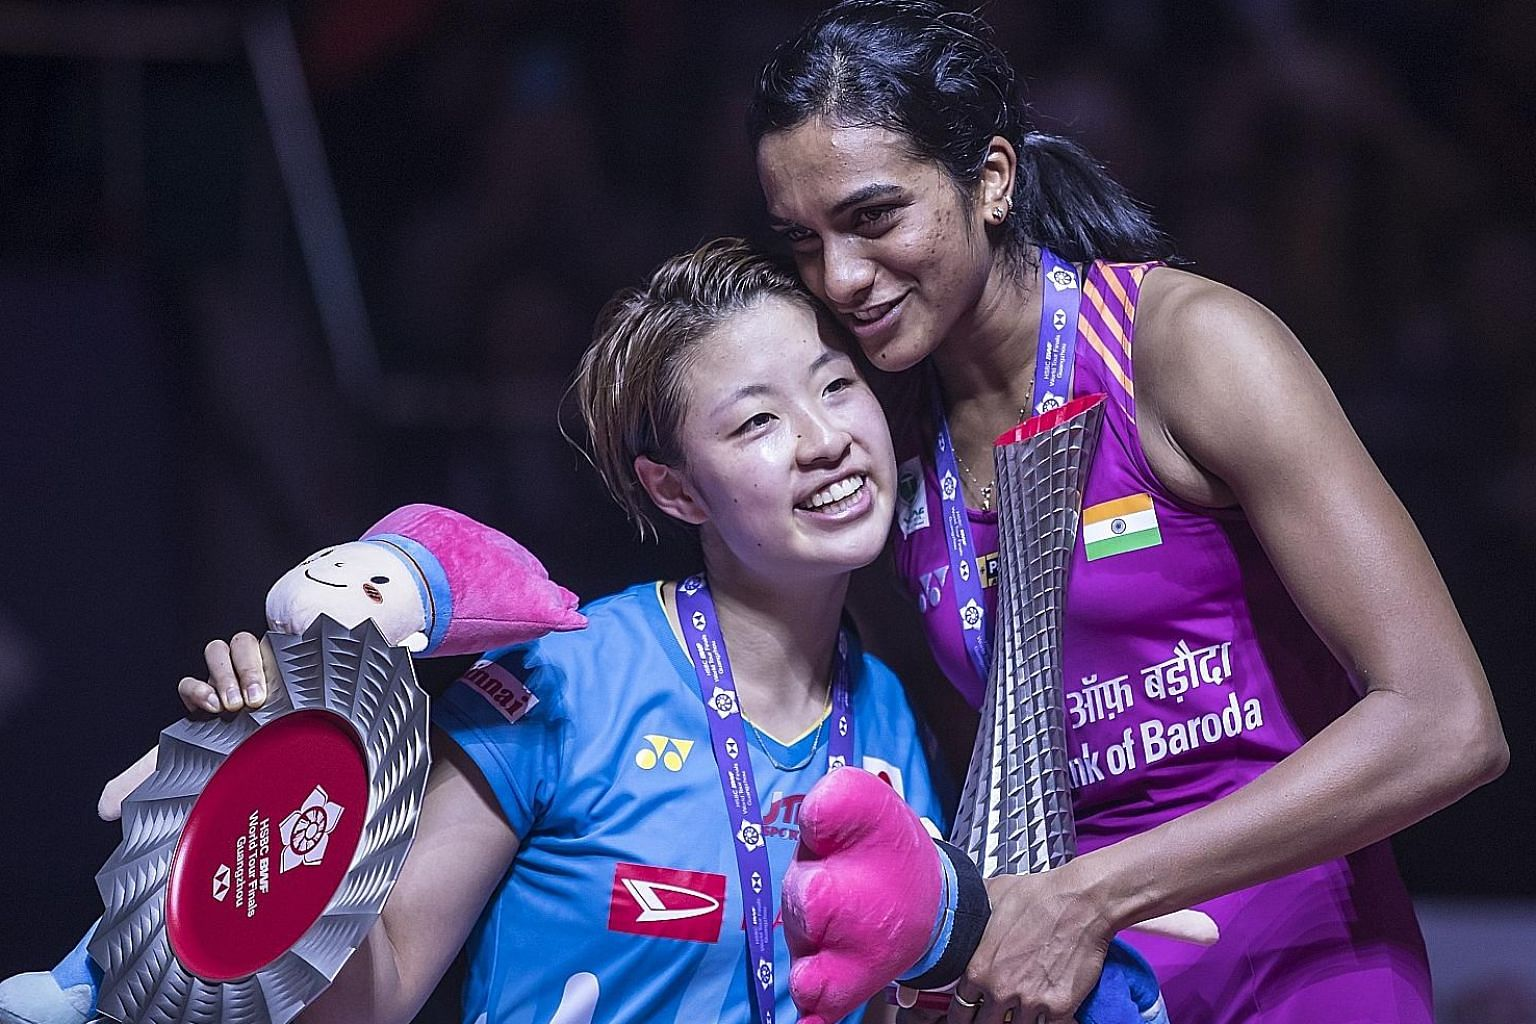 The year ends on a beautiful note for perennial runner-up P.V. Sindhu of India, who beat Japan's Nozomi Okuhara 21-19, 21-17 in the women's singles final at the BWF World Tour Finals in Guangzhou yesterday.